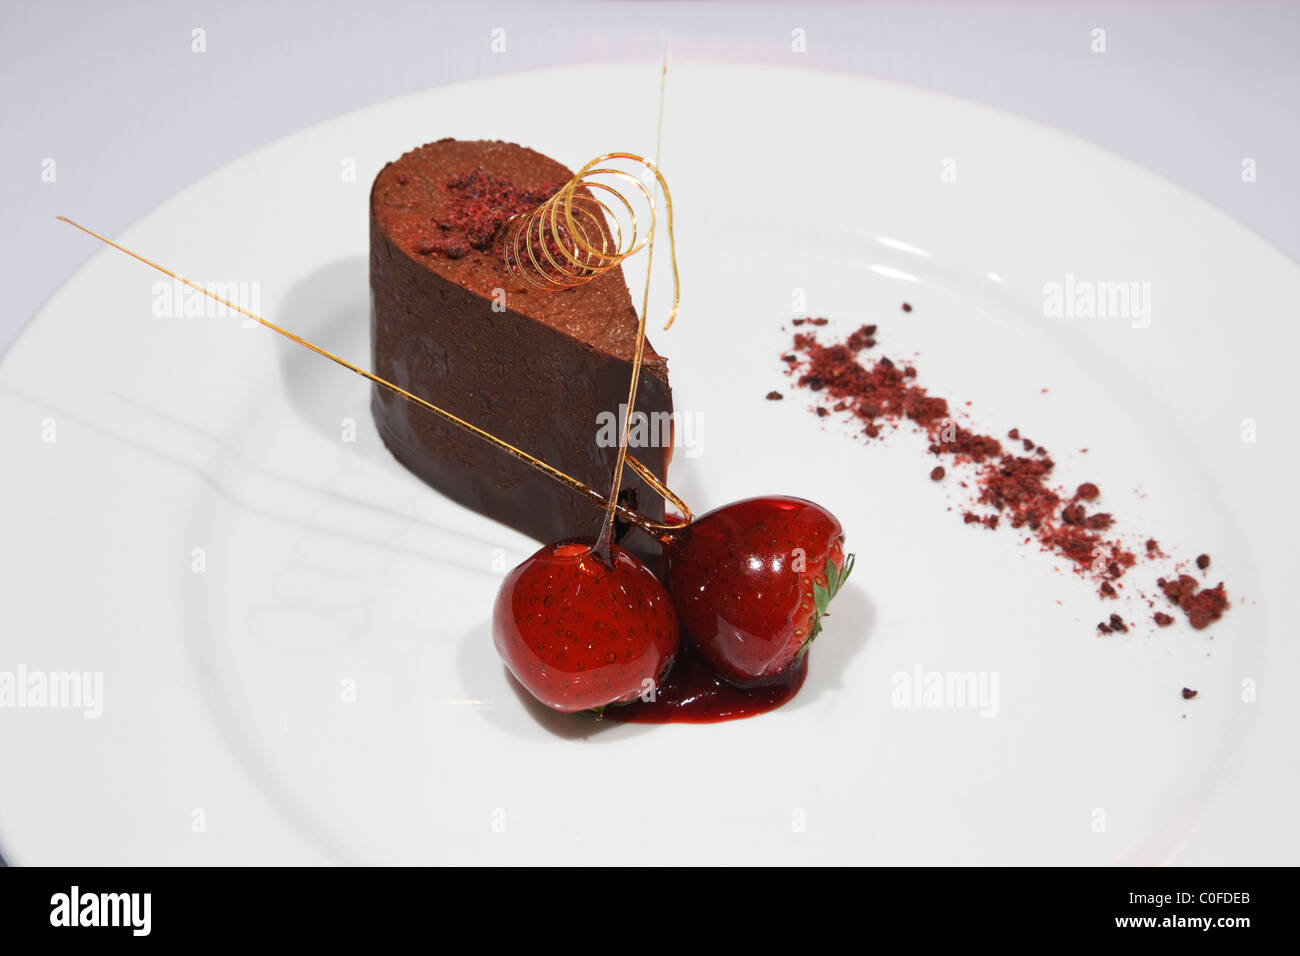 Chocolate mousse with two strawberries gourmet dessert course on a white plate from above - Stock Image